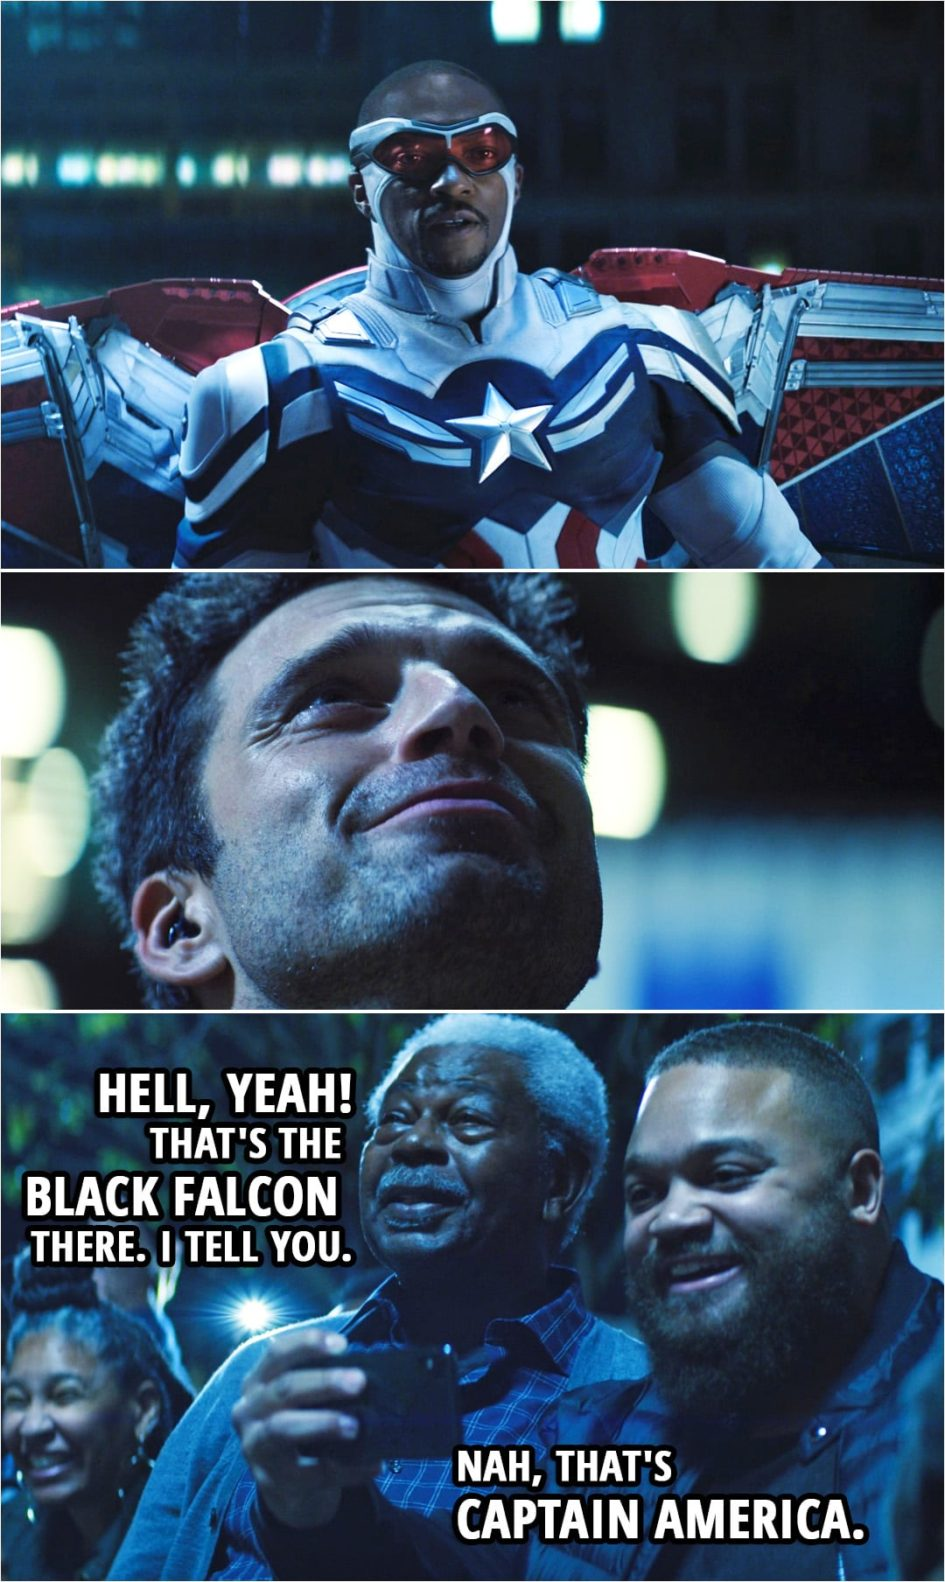 Quote from The Falcon and The Winter Soldier 1x06   Bystander: Hell, yeah! That's the Black Falcon there. I tell you. Another bystander: Nah, that's Captain America.